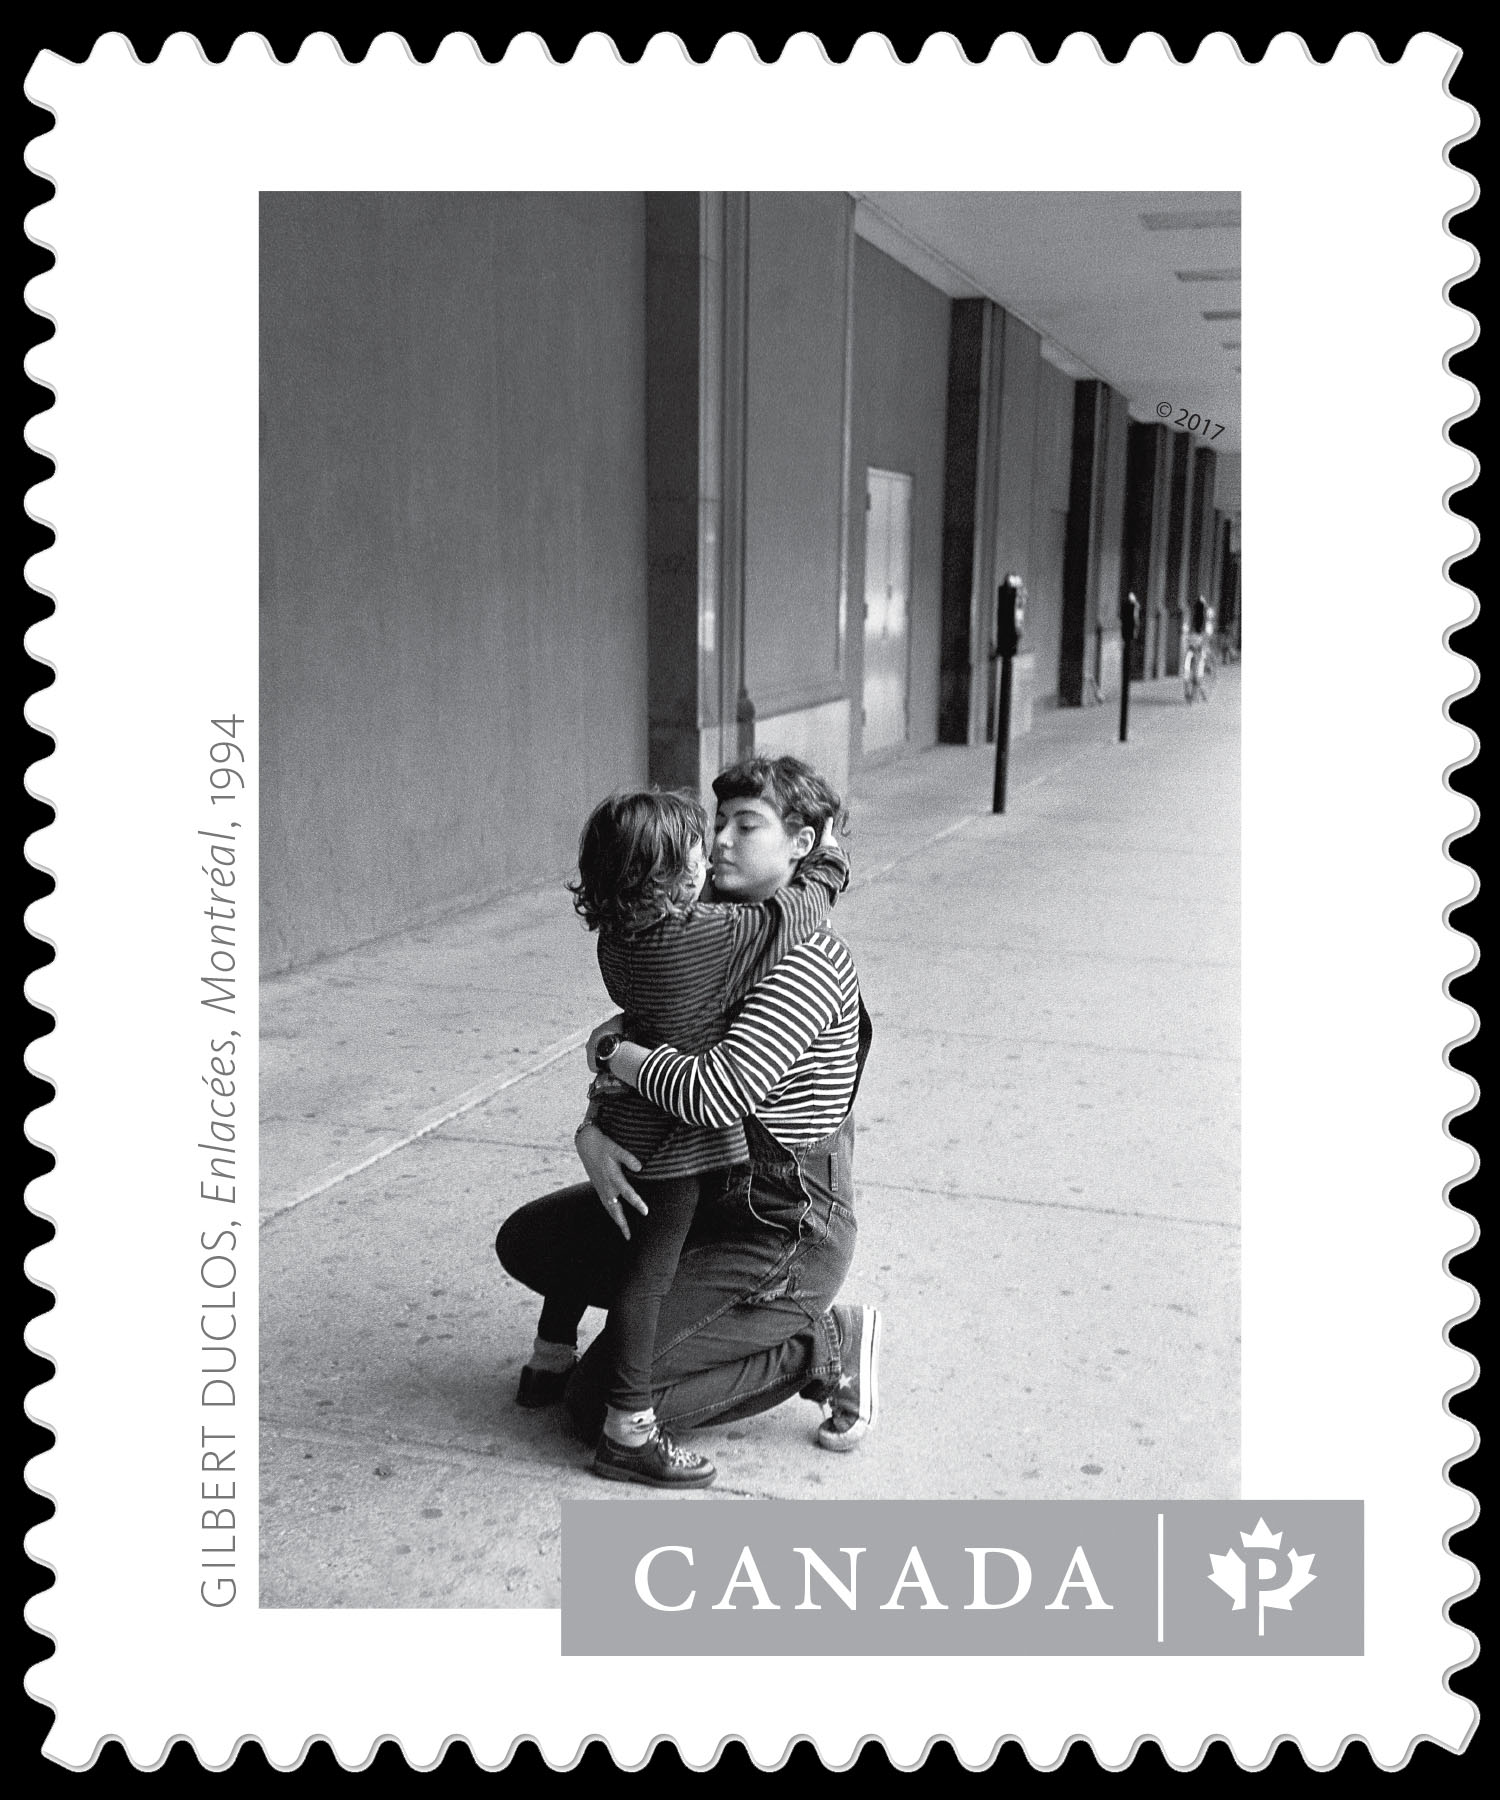 """""""Enlacees, Montreal, 1994"""" - Gilbert Duclos Canada Postage Stamp 